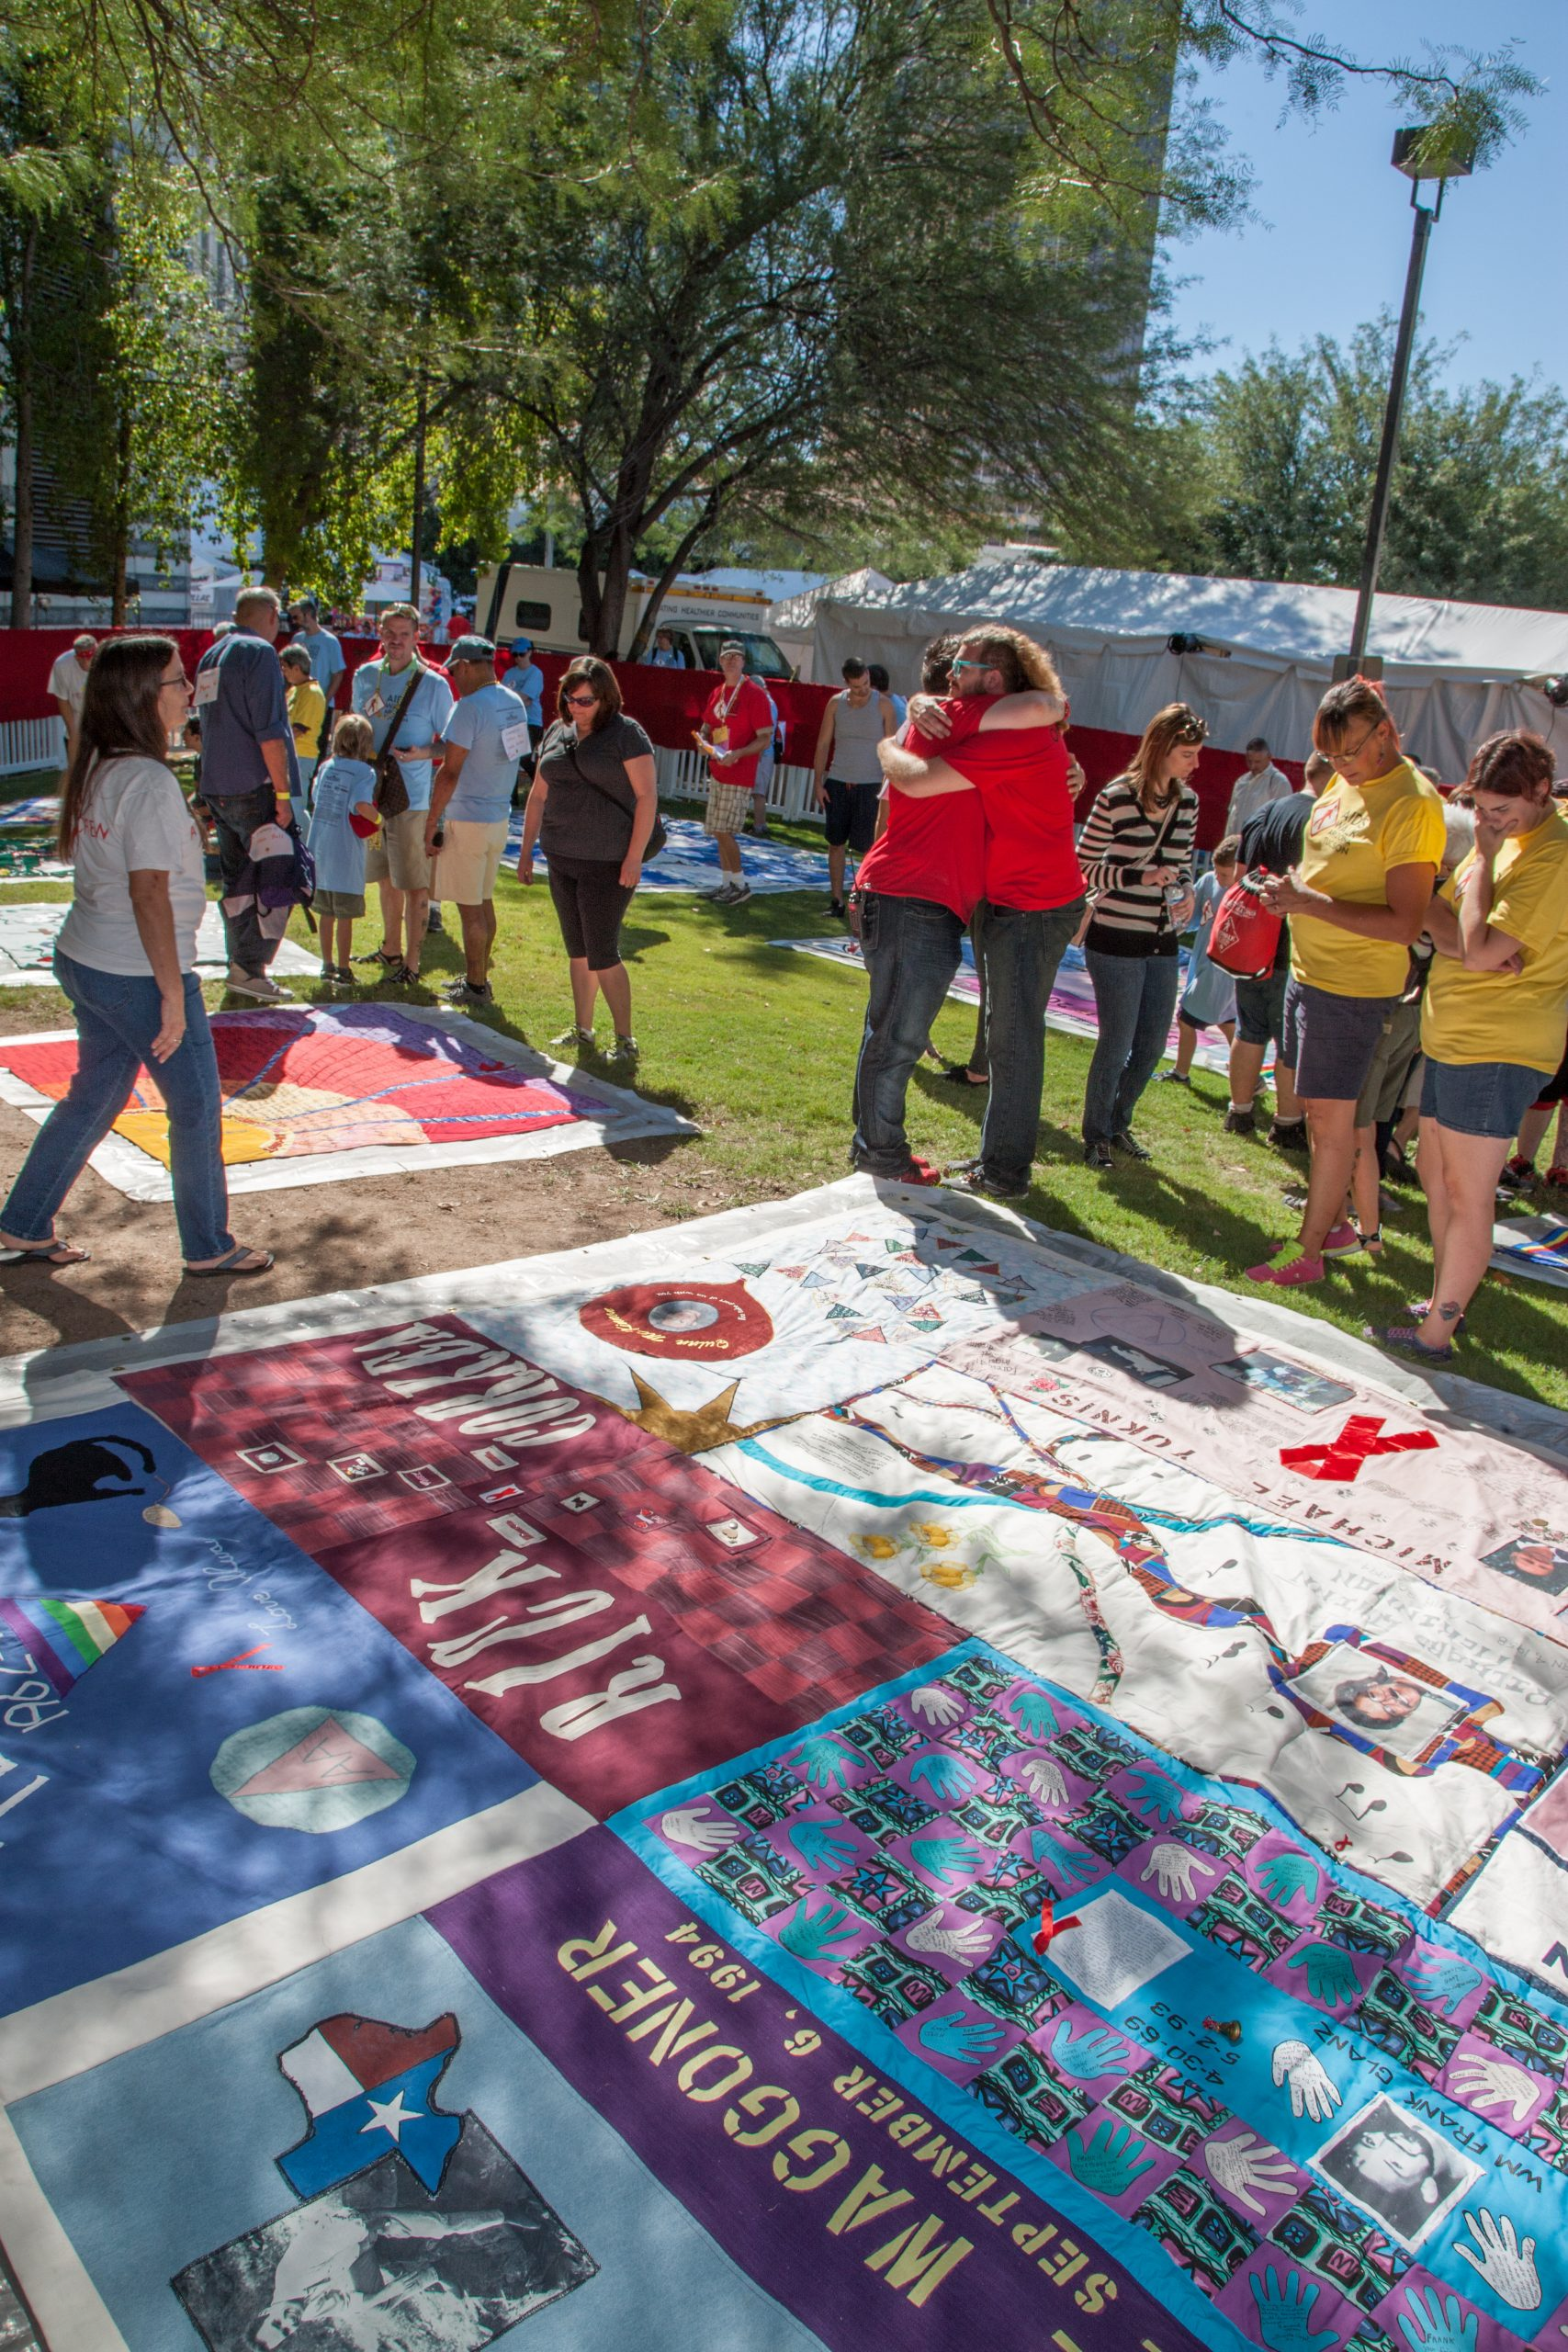 Unidentifed people hugging near section of AIDS Quilt on October 12, 2014 in Tucson, Arizona, USA